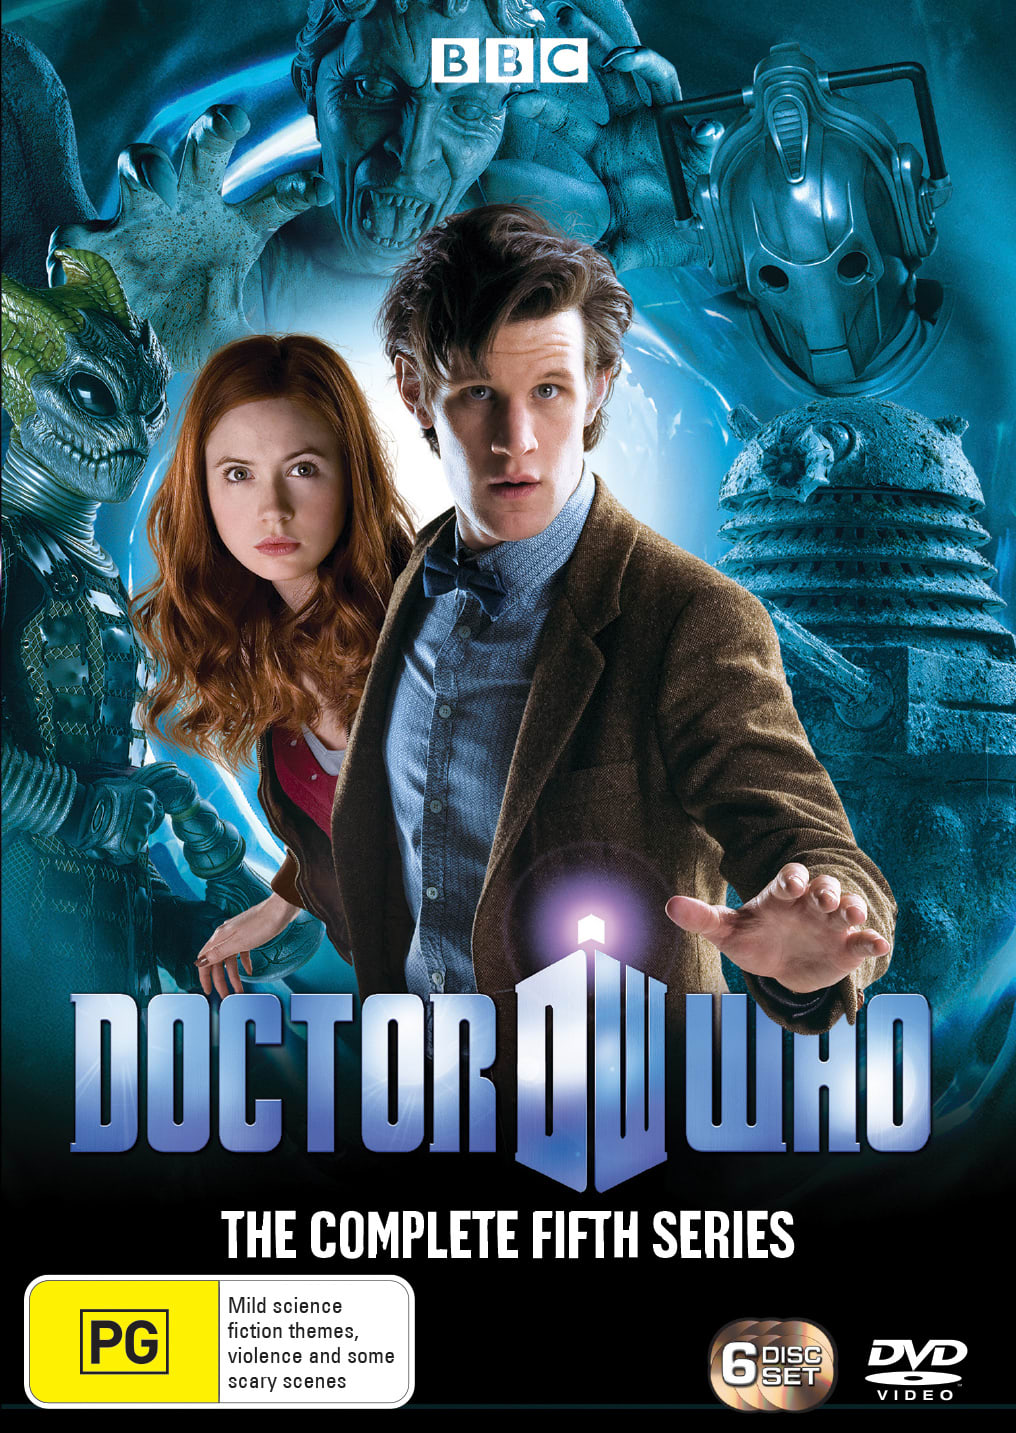 Doctor Who: The Complete Fifth Series (Box Set) [DVD]